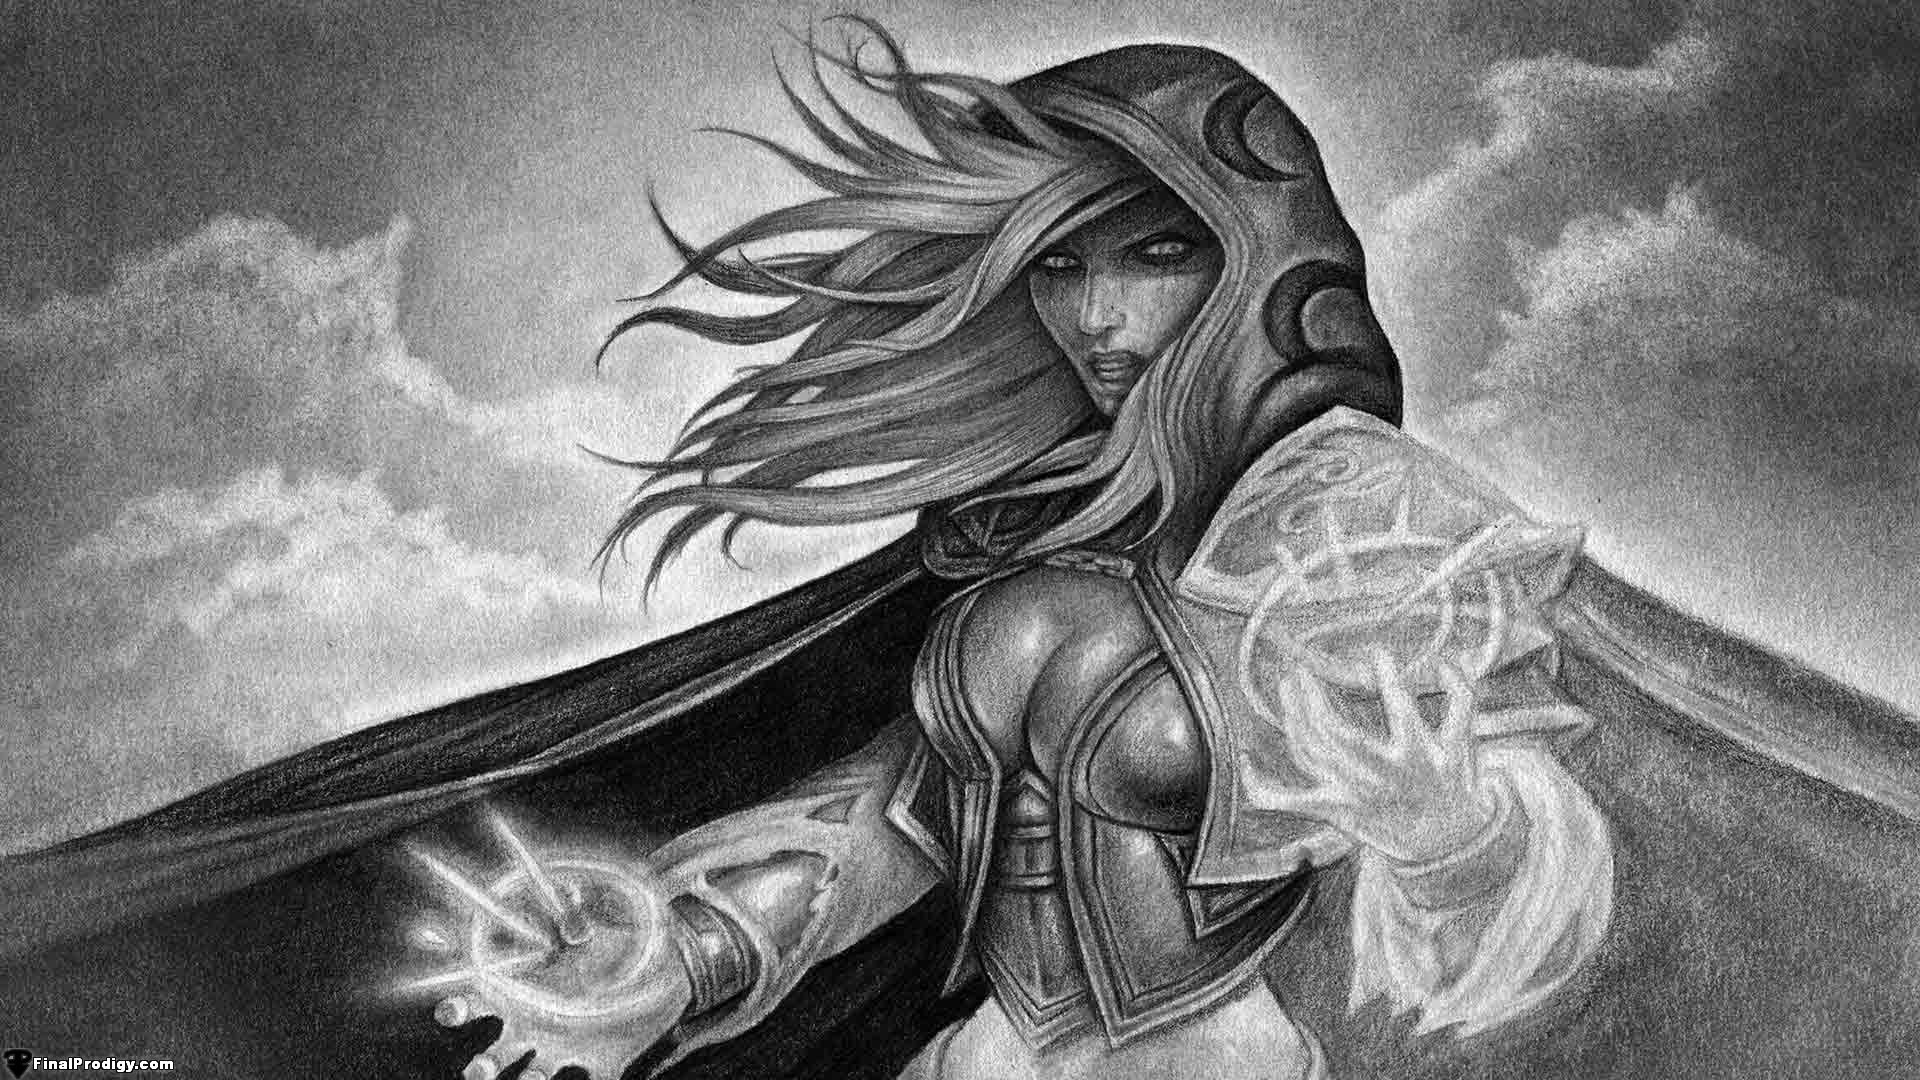 Scribble Drawing Definition : How to draw jaina proudmoore from world of warcraft